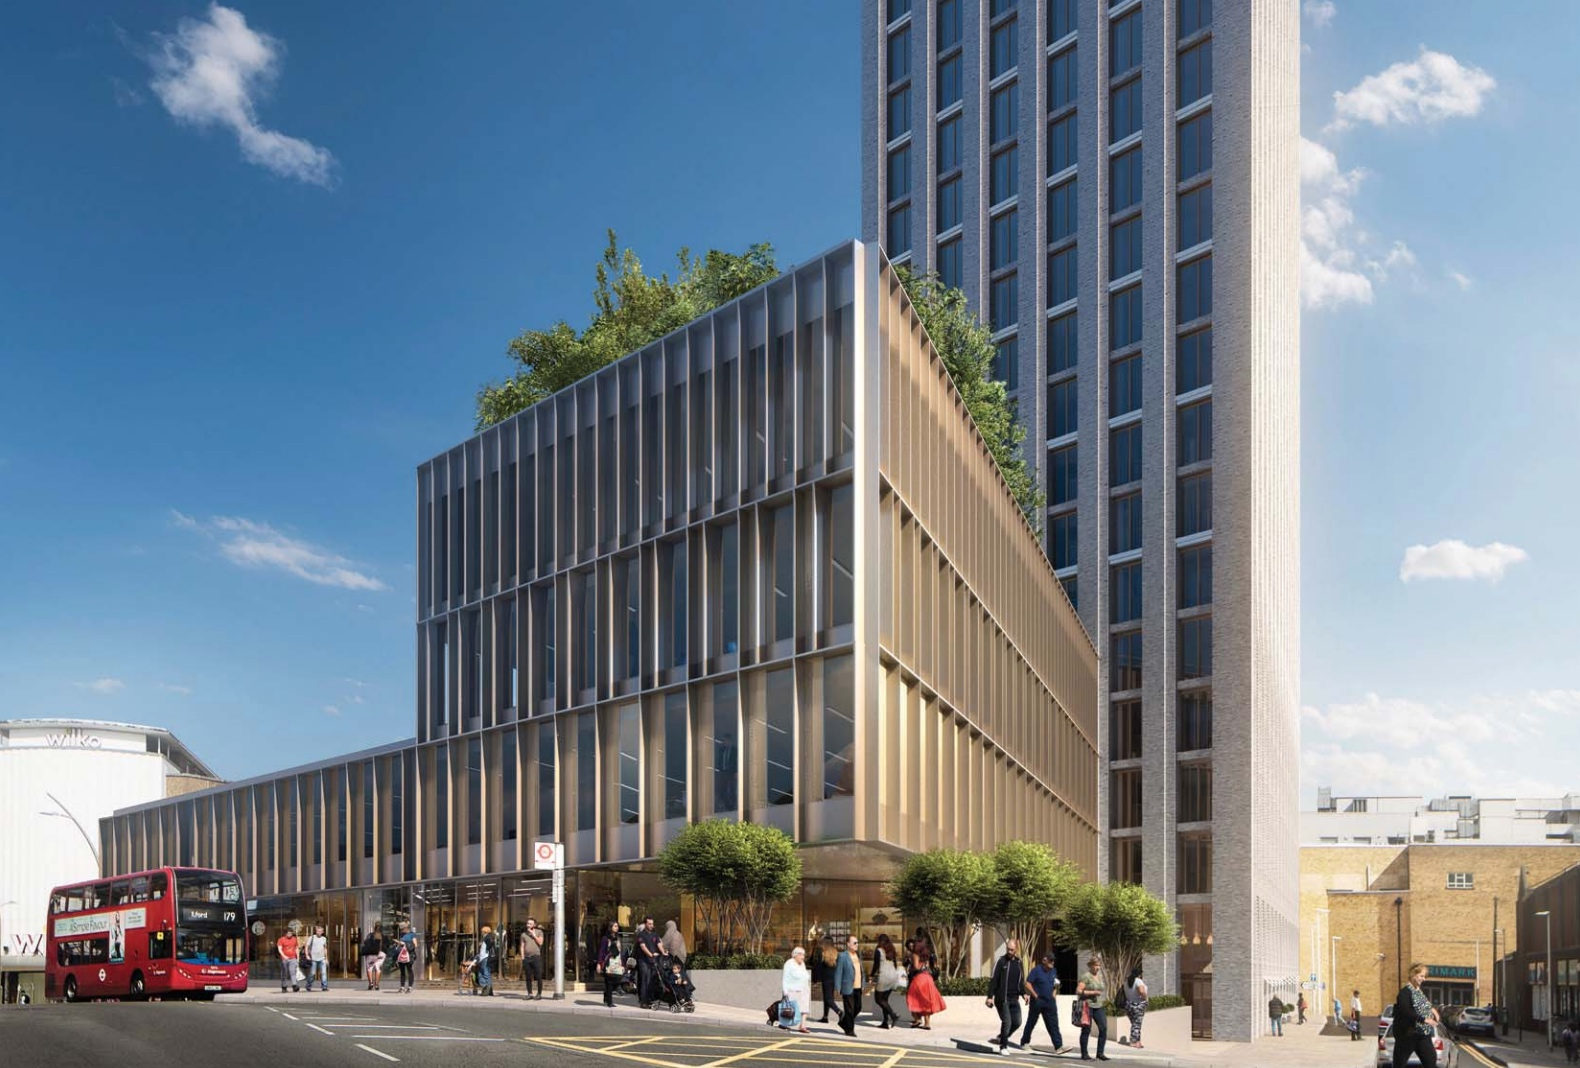 Plans in for 42-storey Ilford residential tower